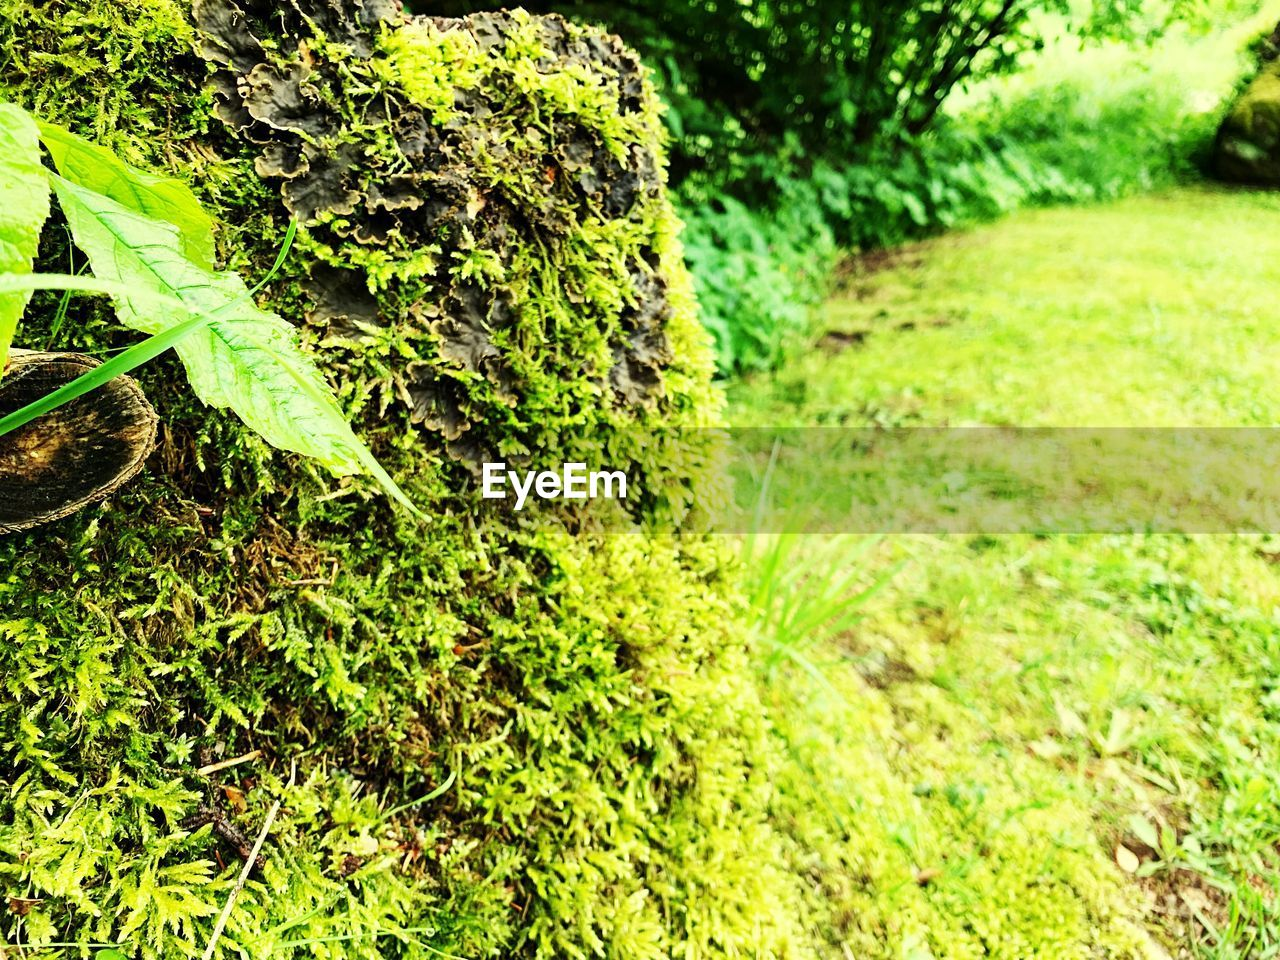 green color, plant, growth, nature, no people, day, moss, plant part, beauty in nature, leaf, outdoors, grass, close-up, tranquility, land, tree, focus on foreground, field, selective focus, rock, lichen